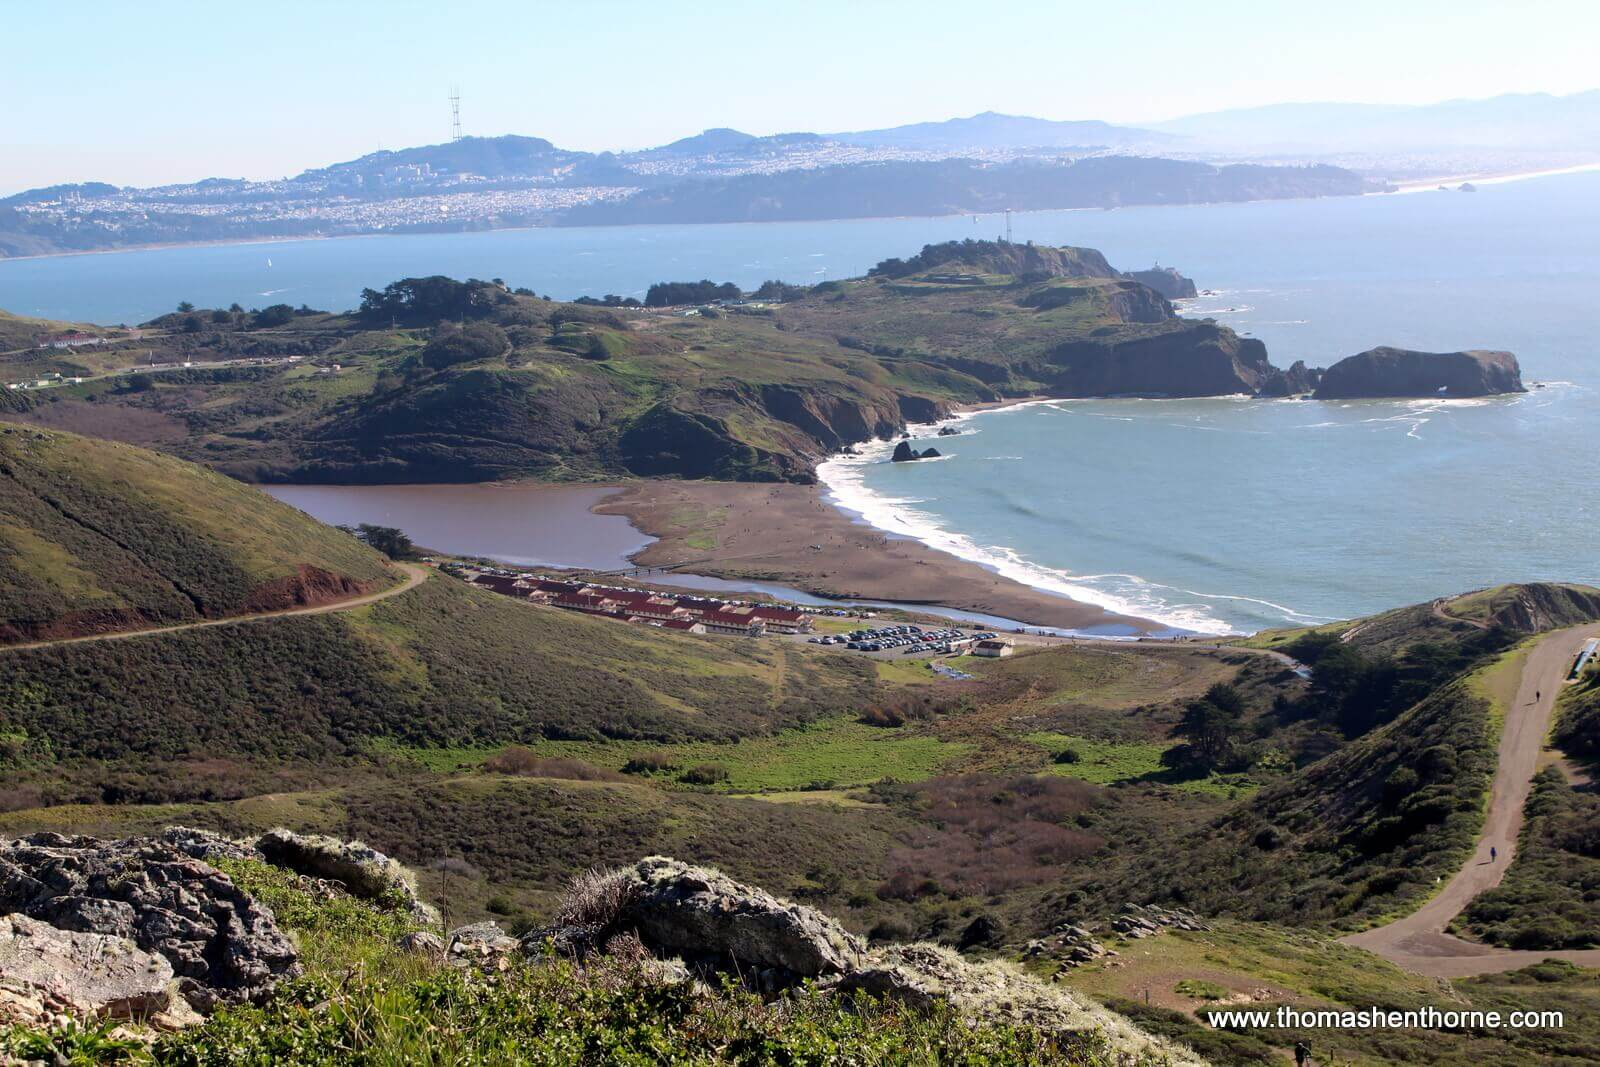 View of Rodeo Beach from high above